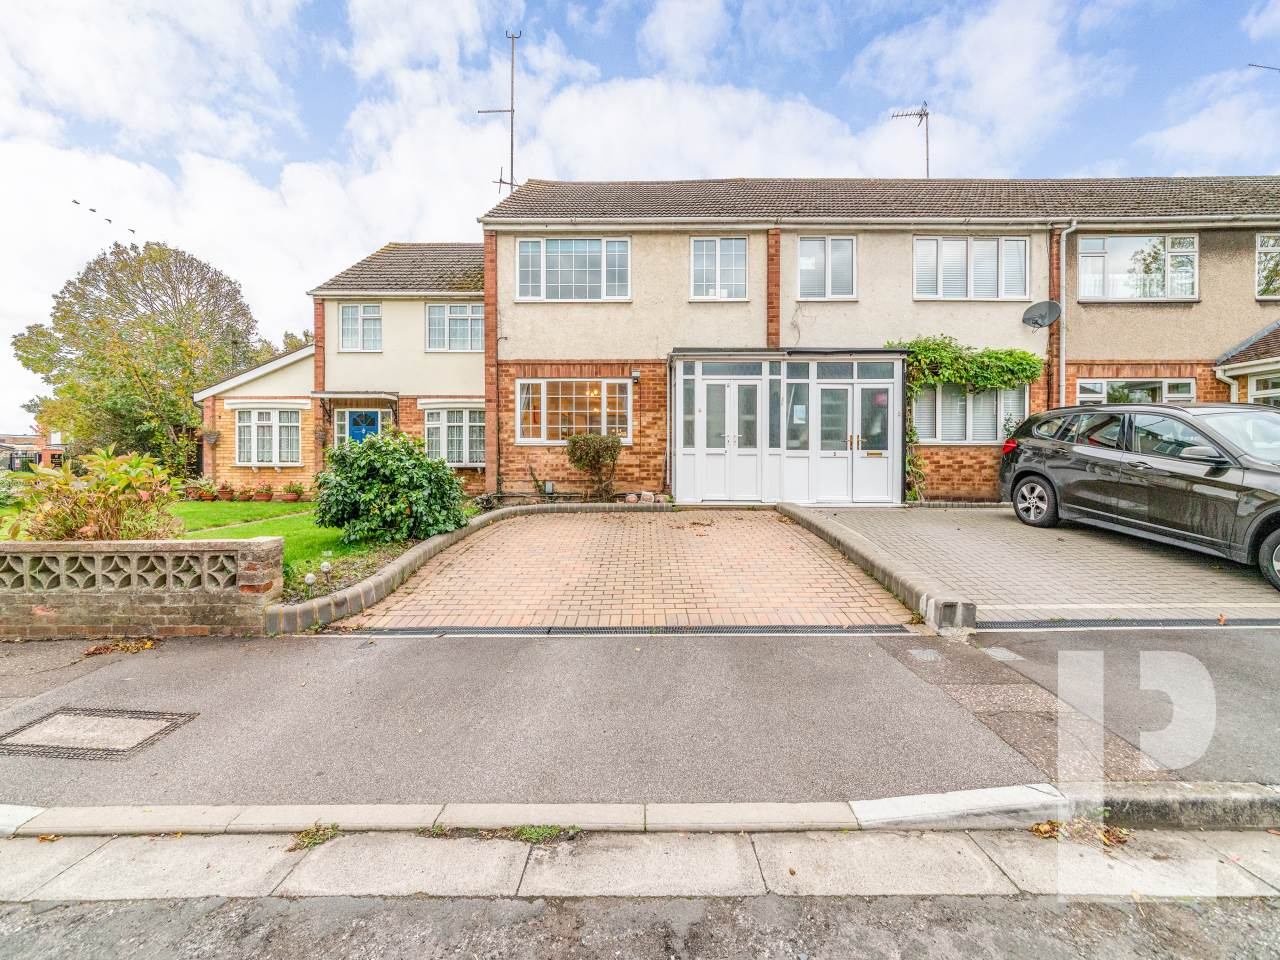 4 bed house for sale in Waltham Abbey , EN9